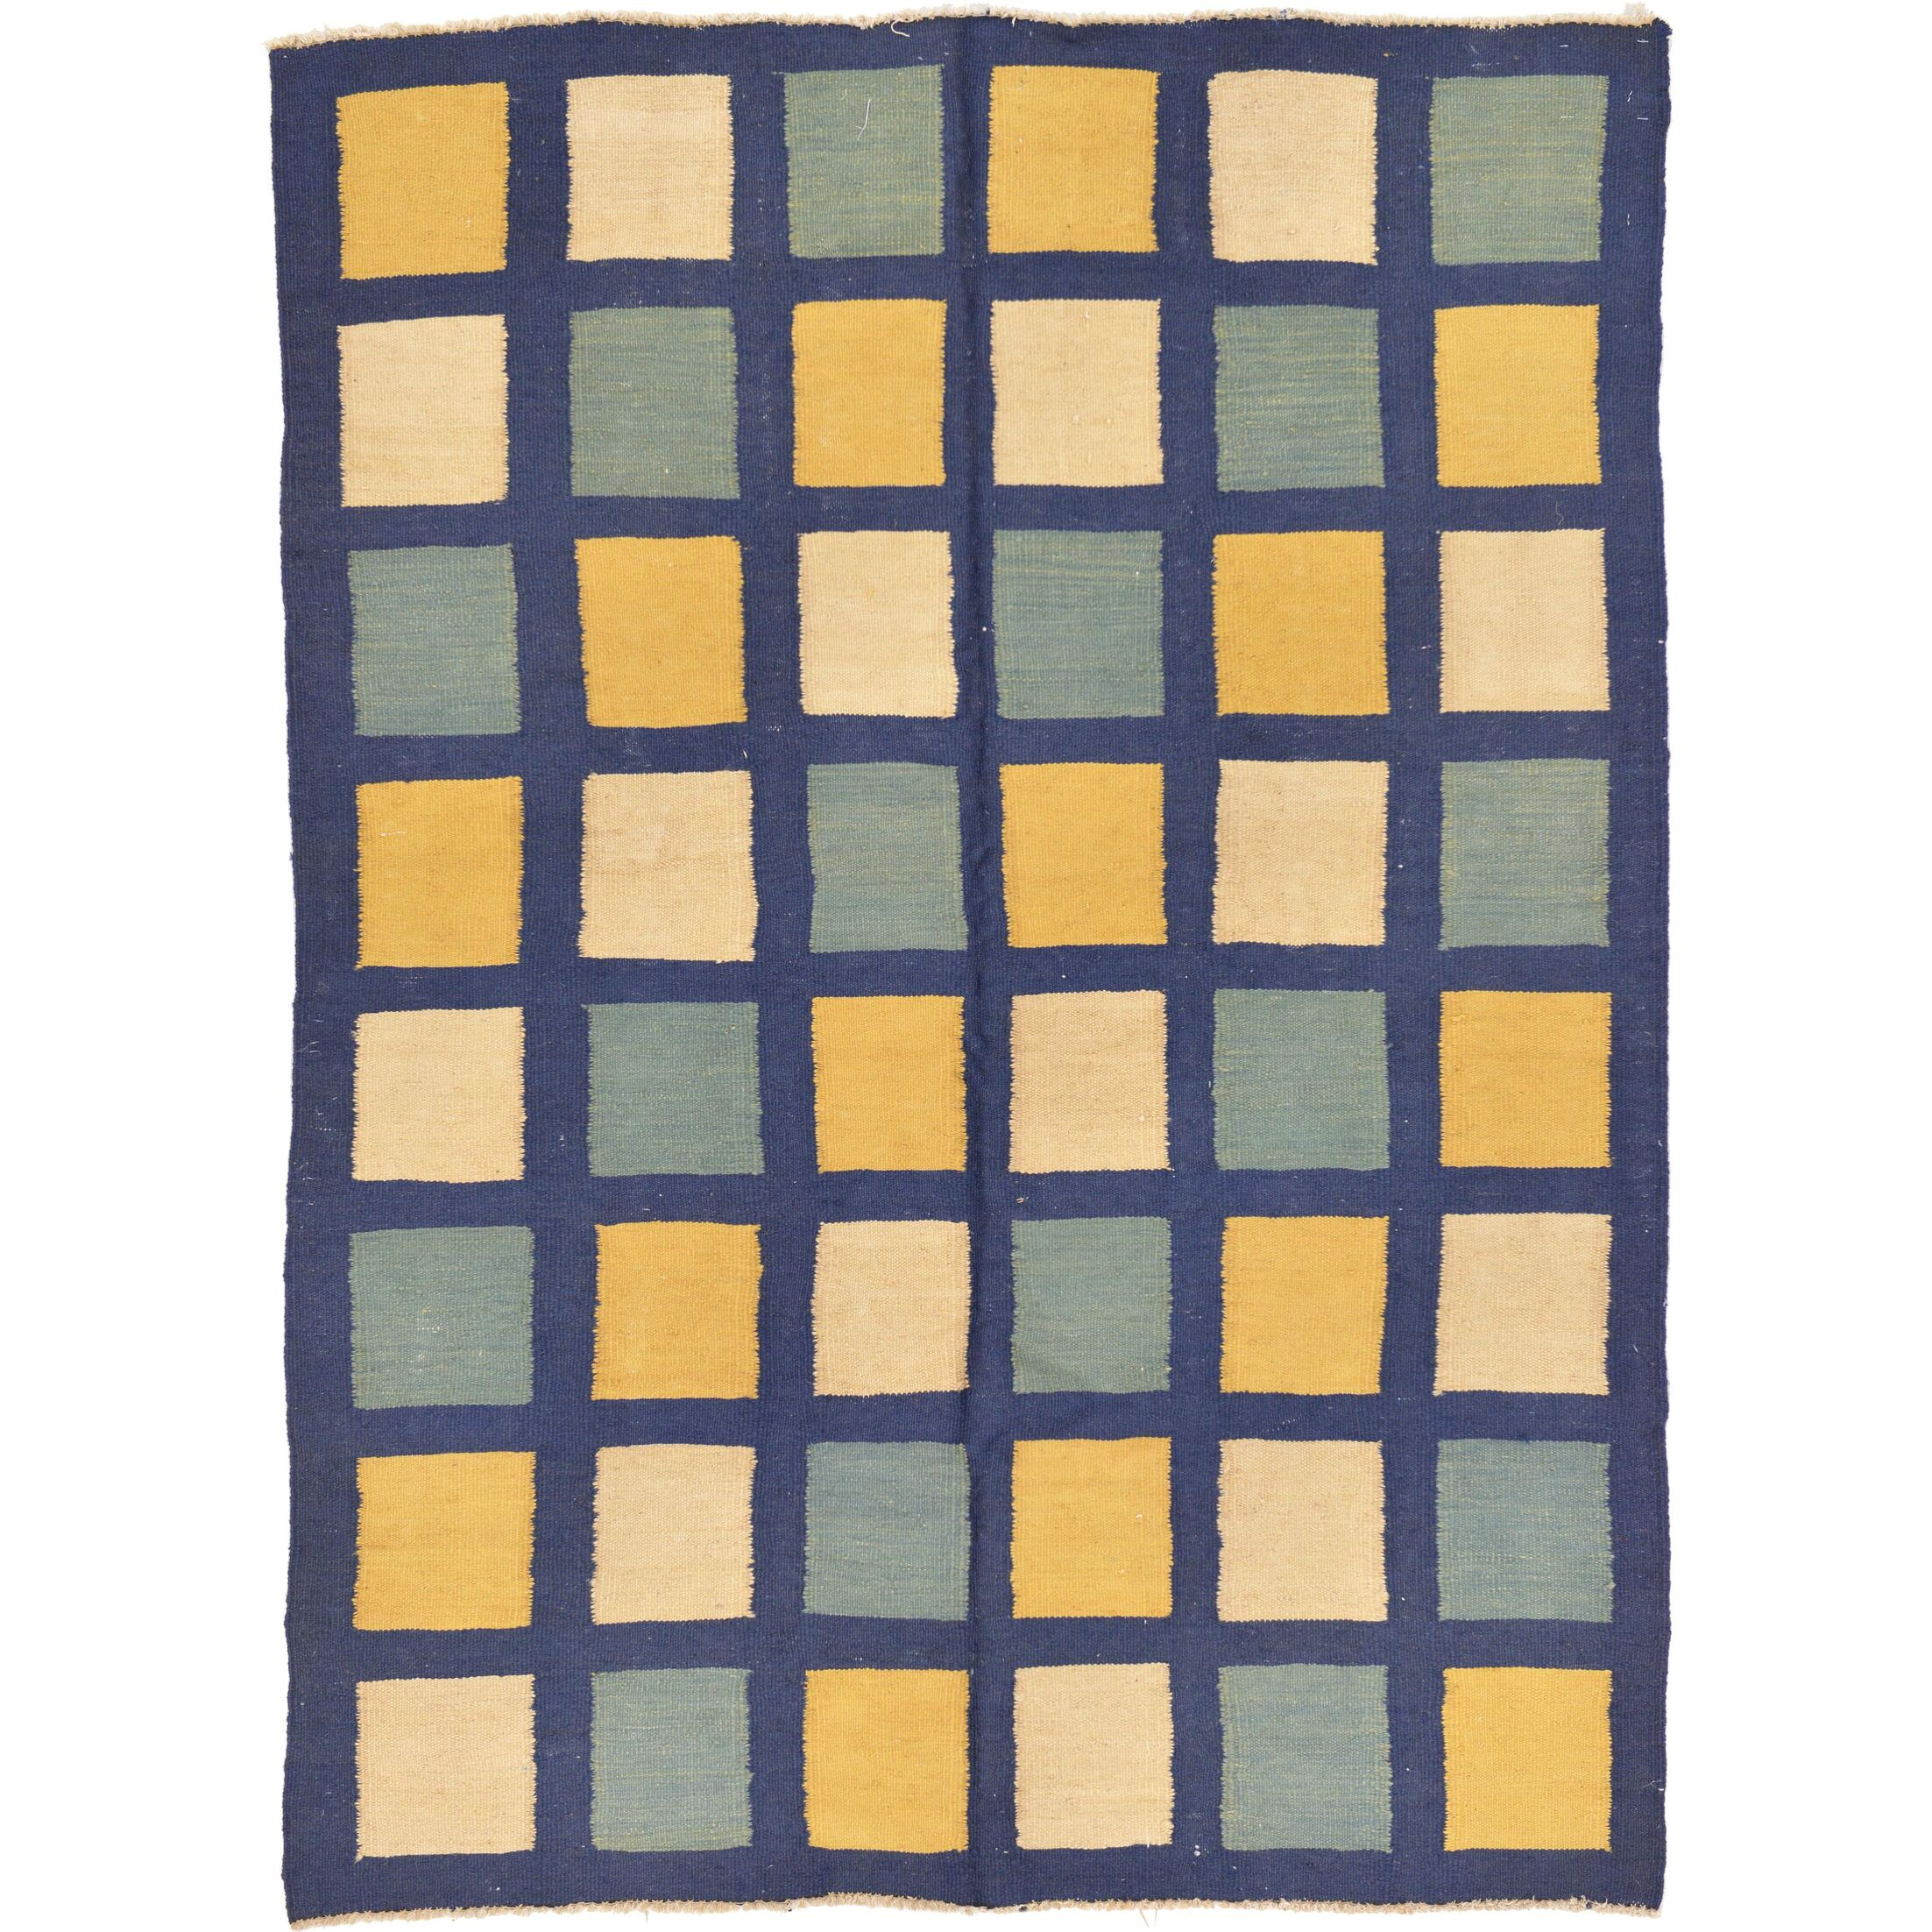 One-of-a-Kind Dora Hand-Knotted Wool Navy Blue/White/Yellow Area Rug